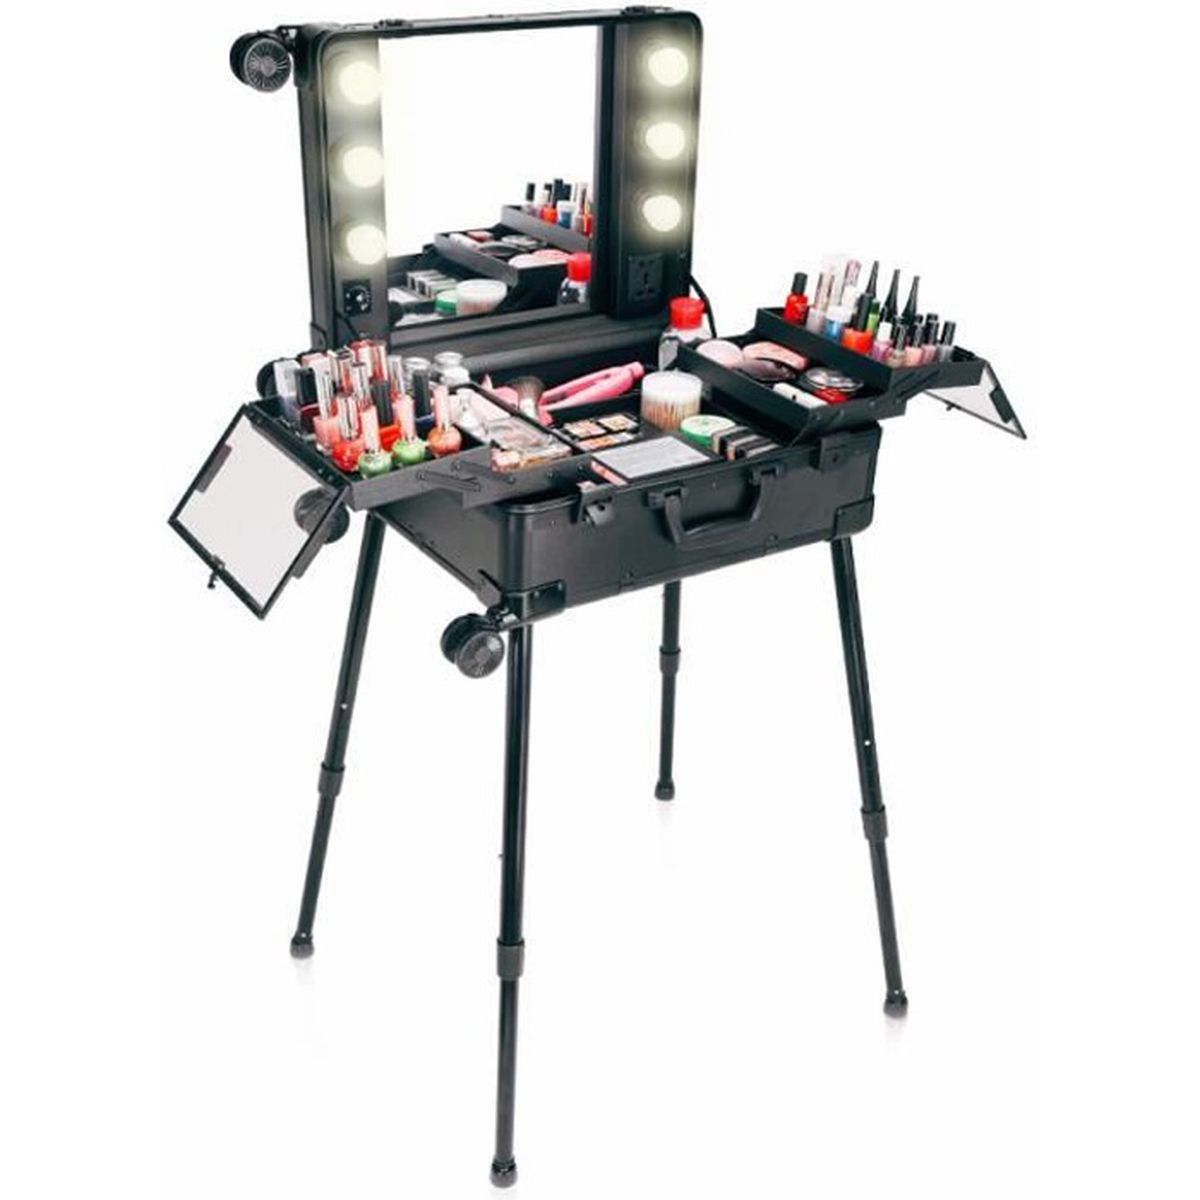 VALISE - BAGAGE Mallette Maquillage Trolley Beauty Case Voyage Val